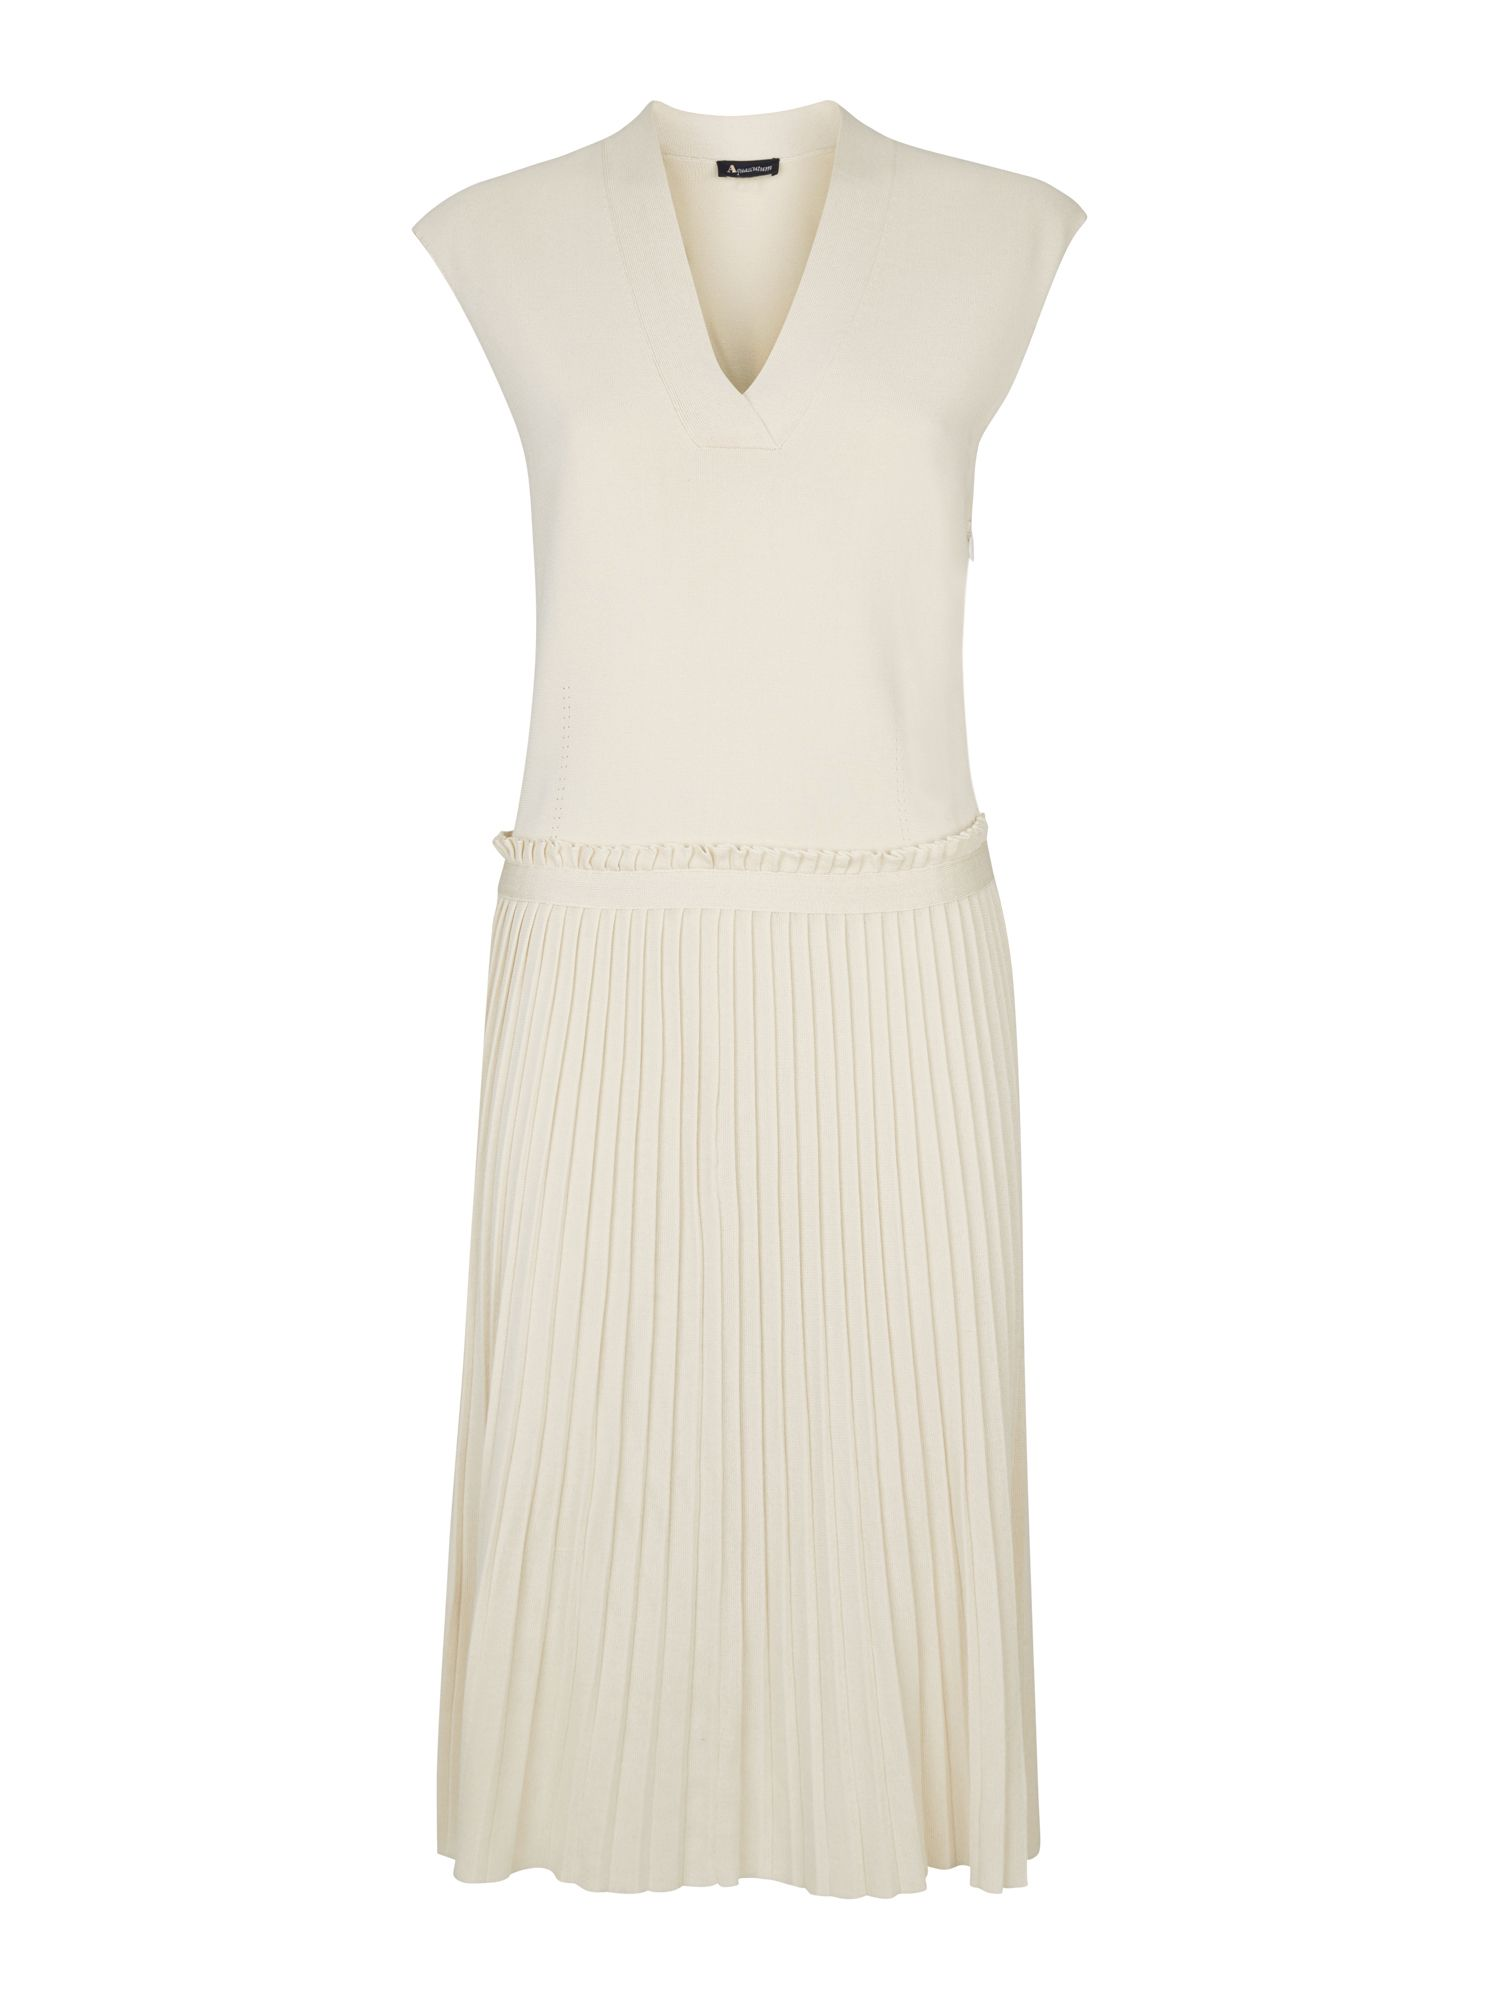 Aquascutum Iris Knitted Pleated Dress, White